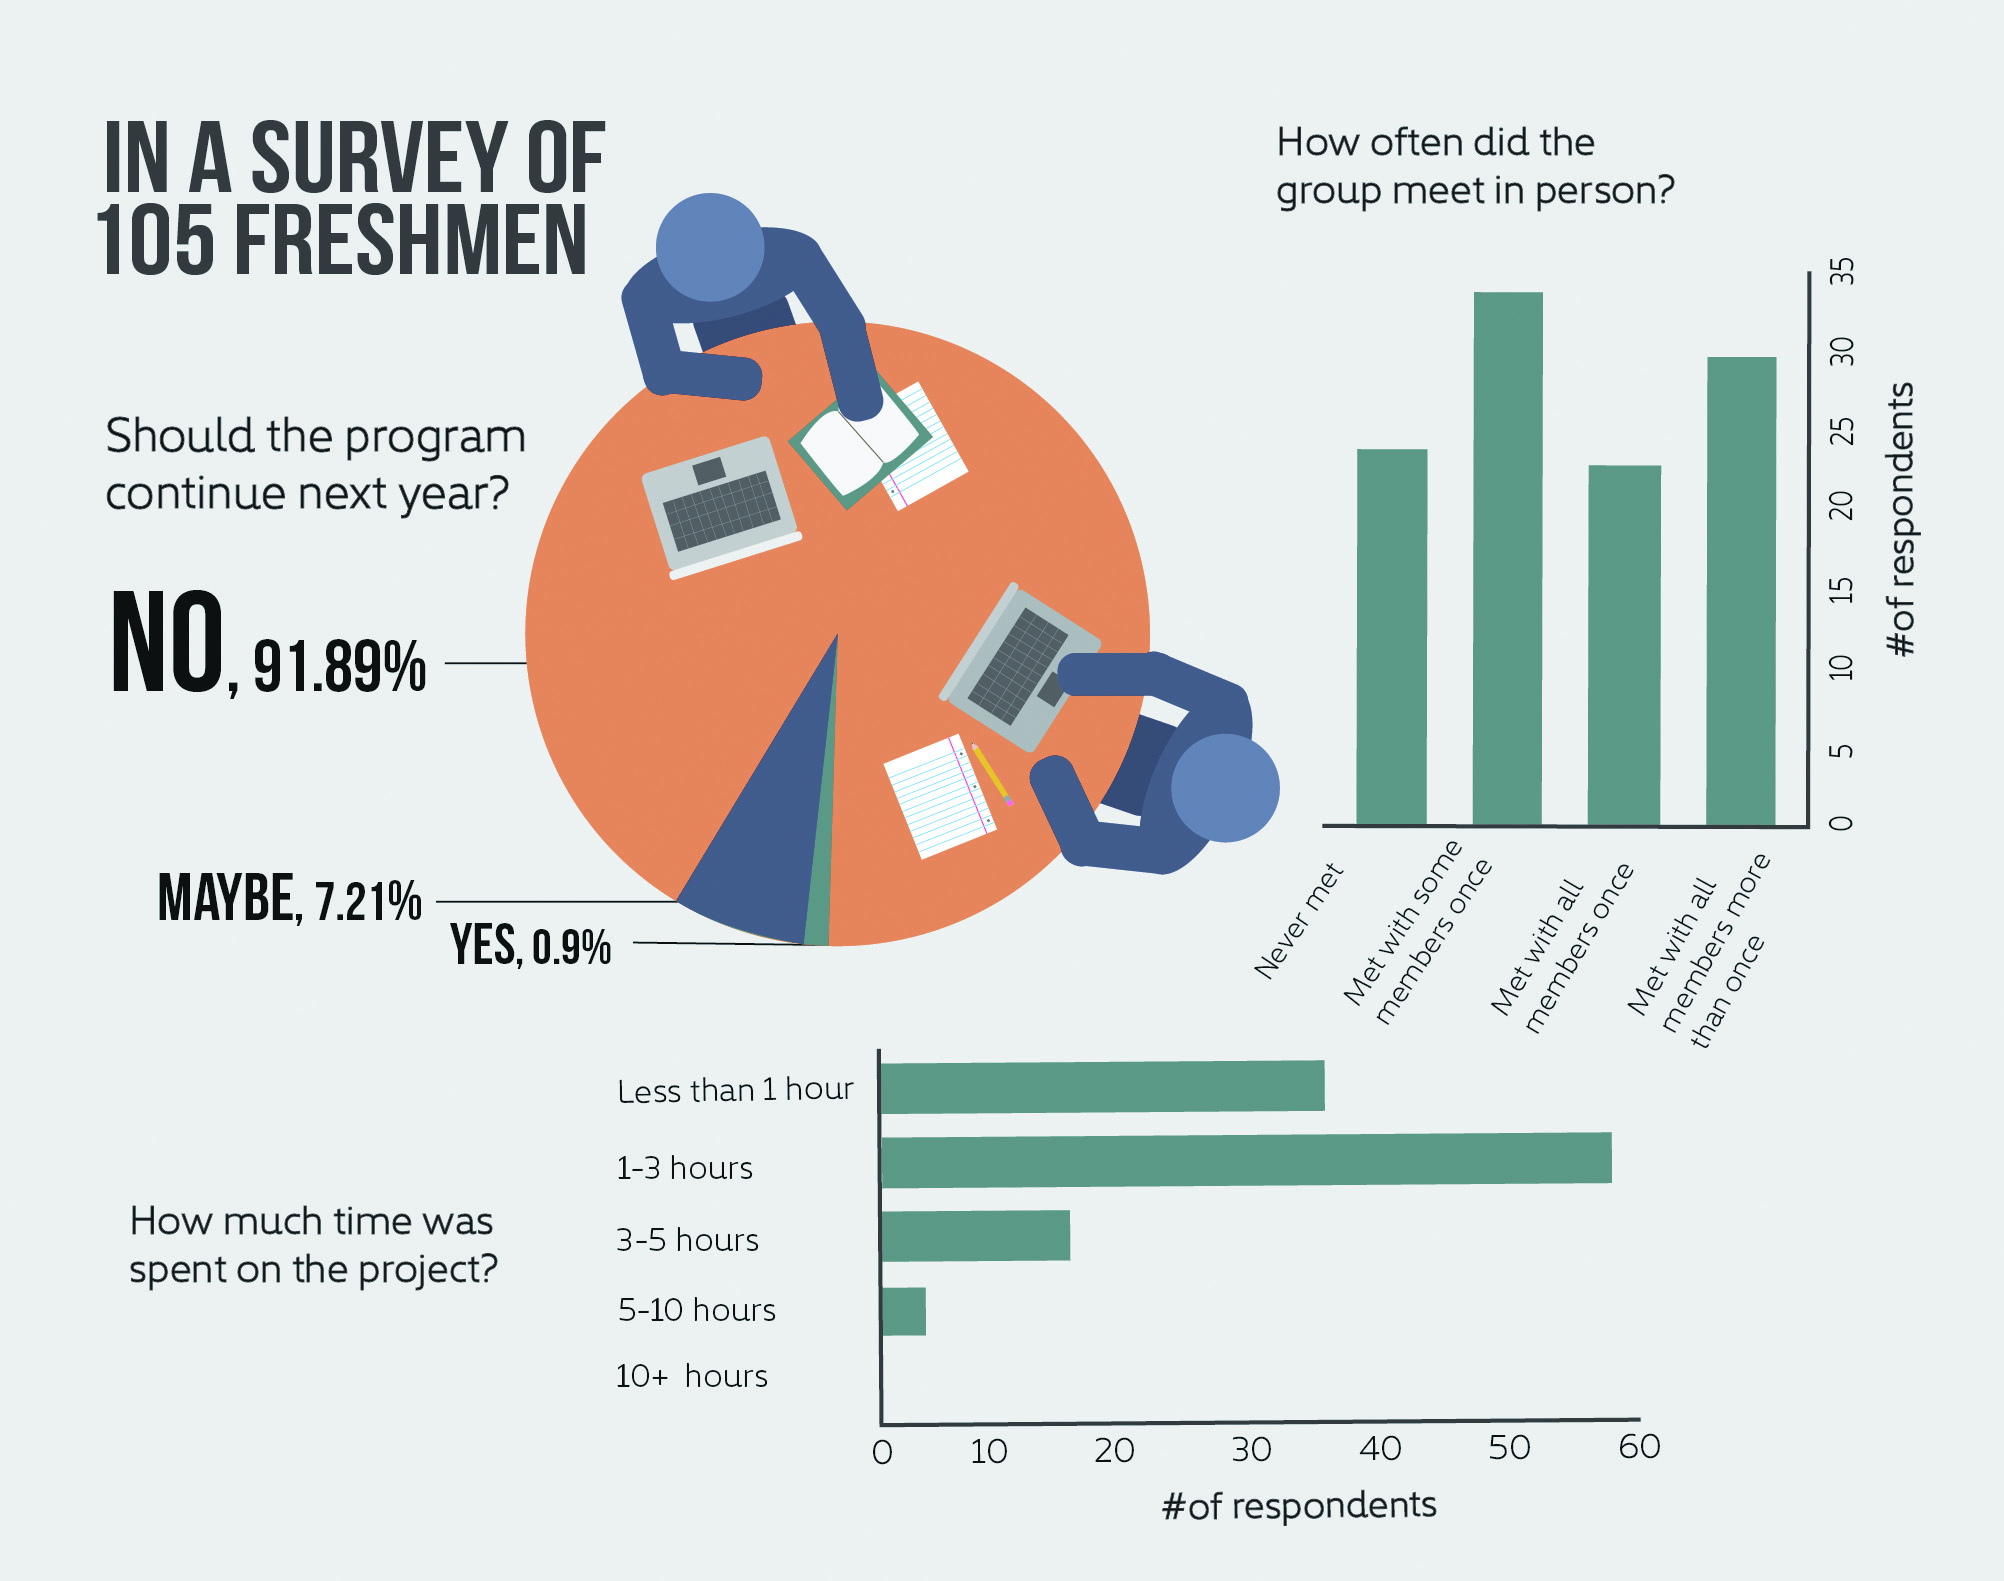 Survey shows dissatisfaction with mandatory freshman group project